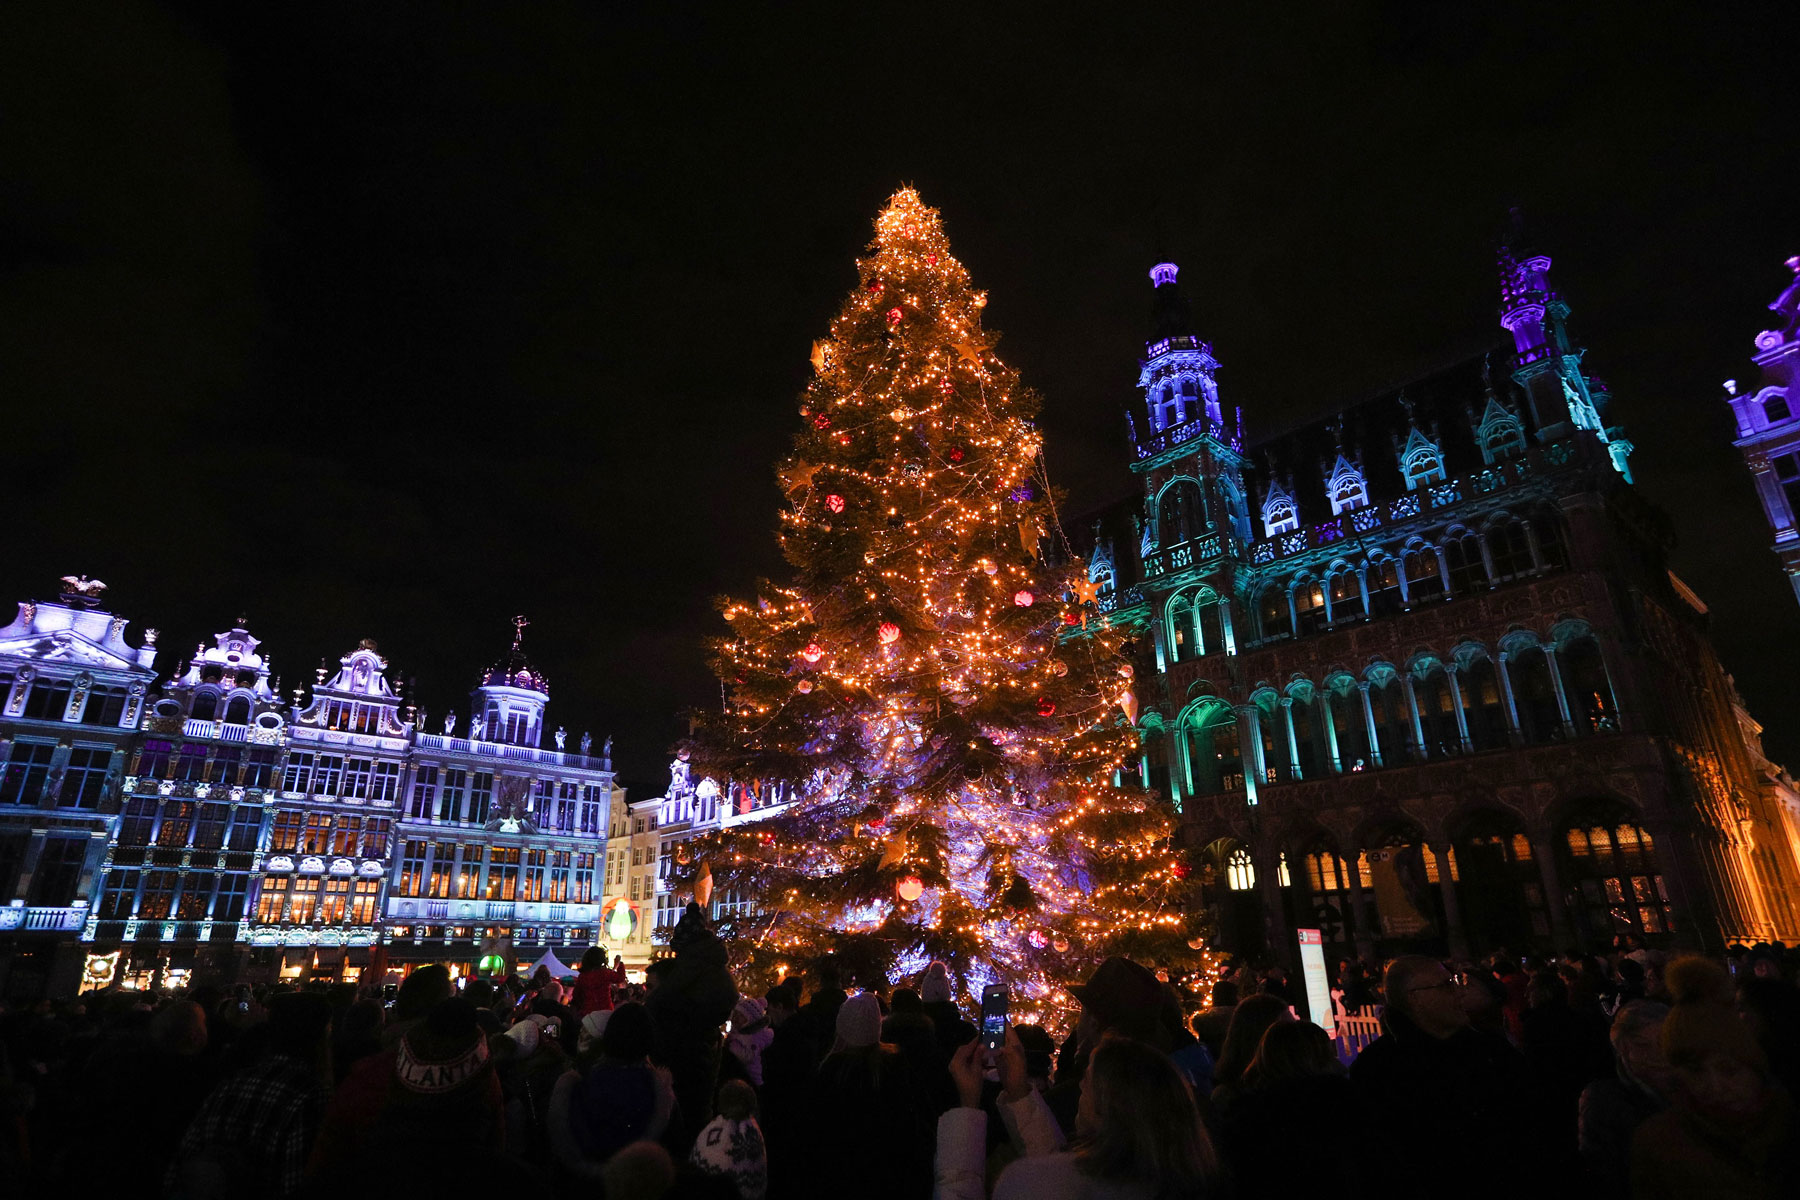 sound and light show at the Grand Place during the Winter Wonders in Brussels